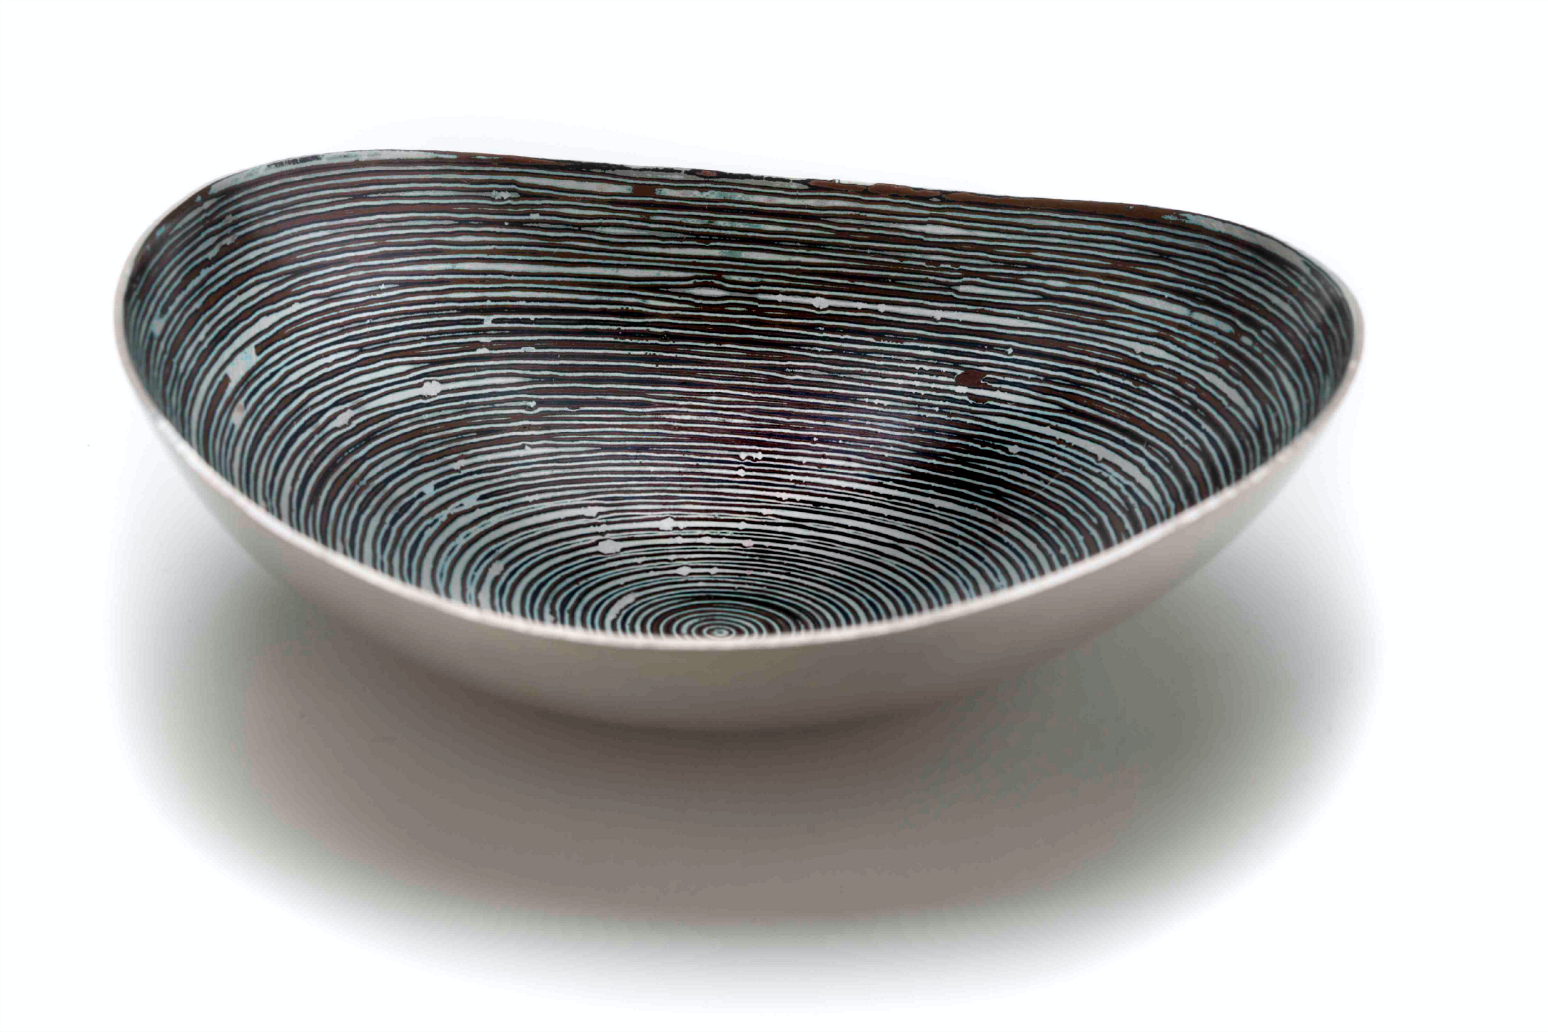 Hand raised Mokume Gane Dish made from 7 layers of silver copper and gilding metal. Ht 3cm Dia 10.5cm